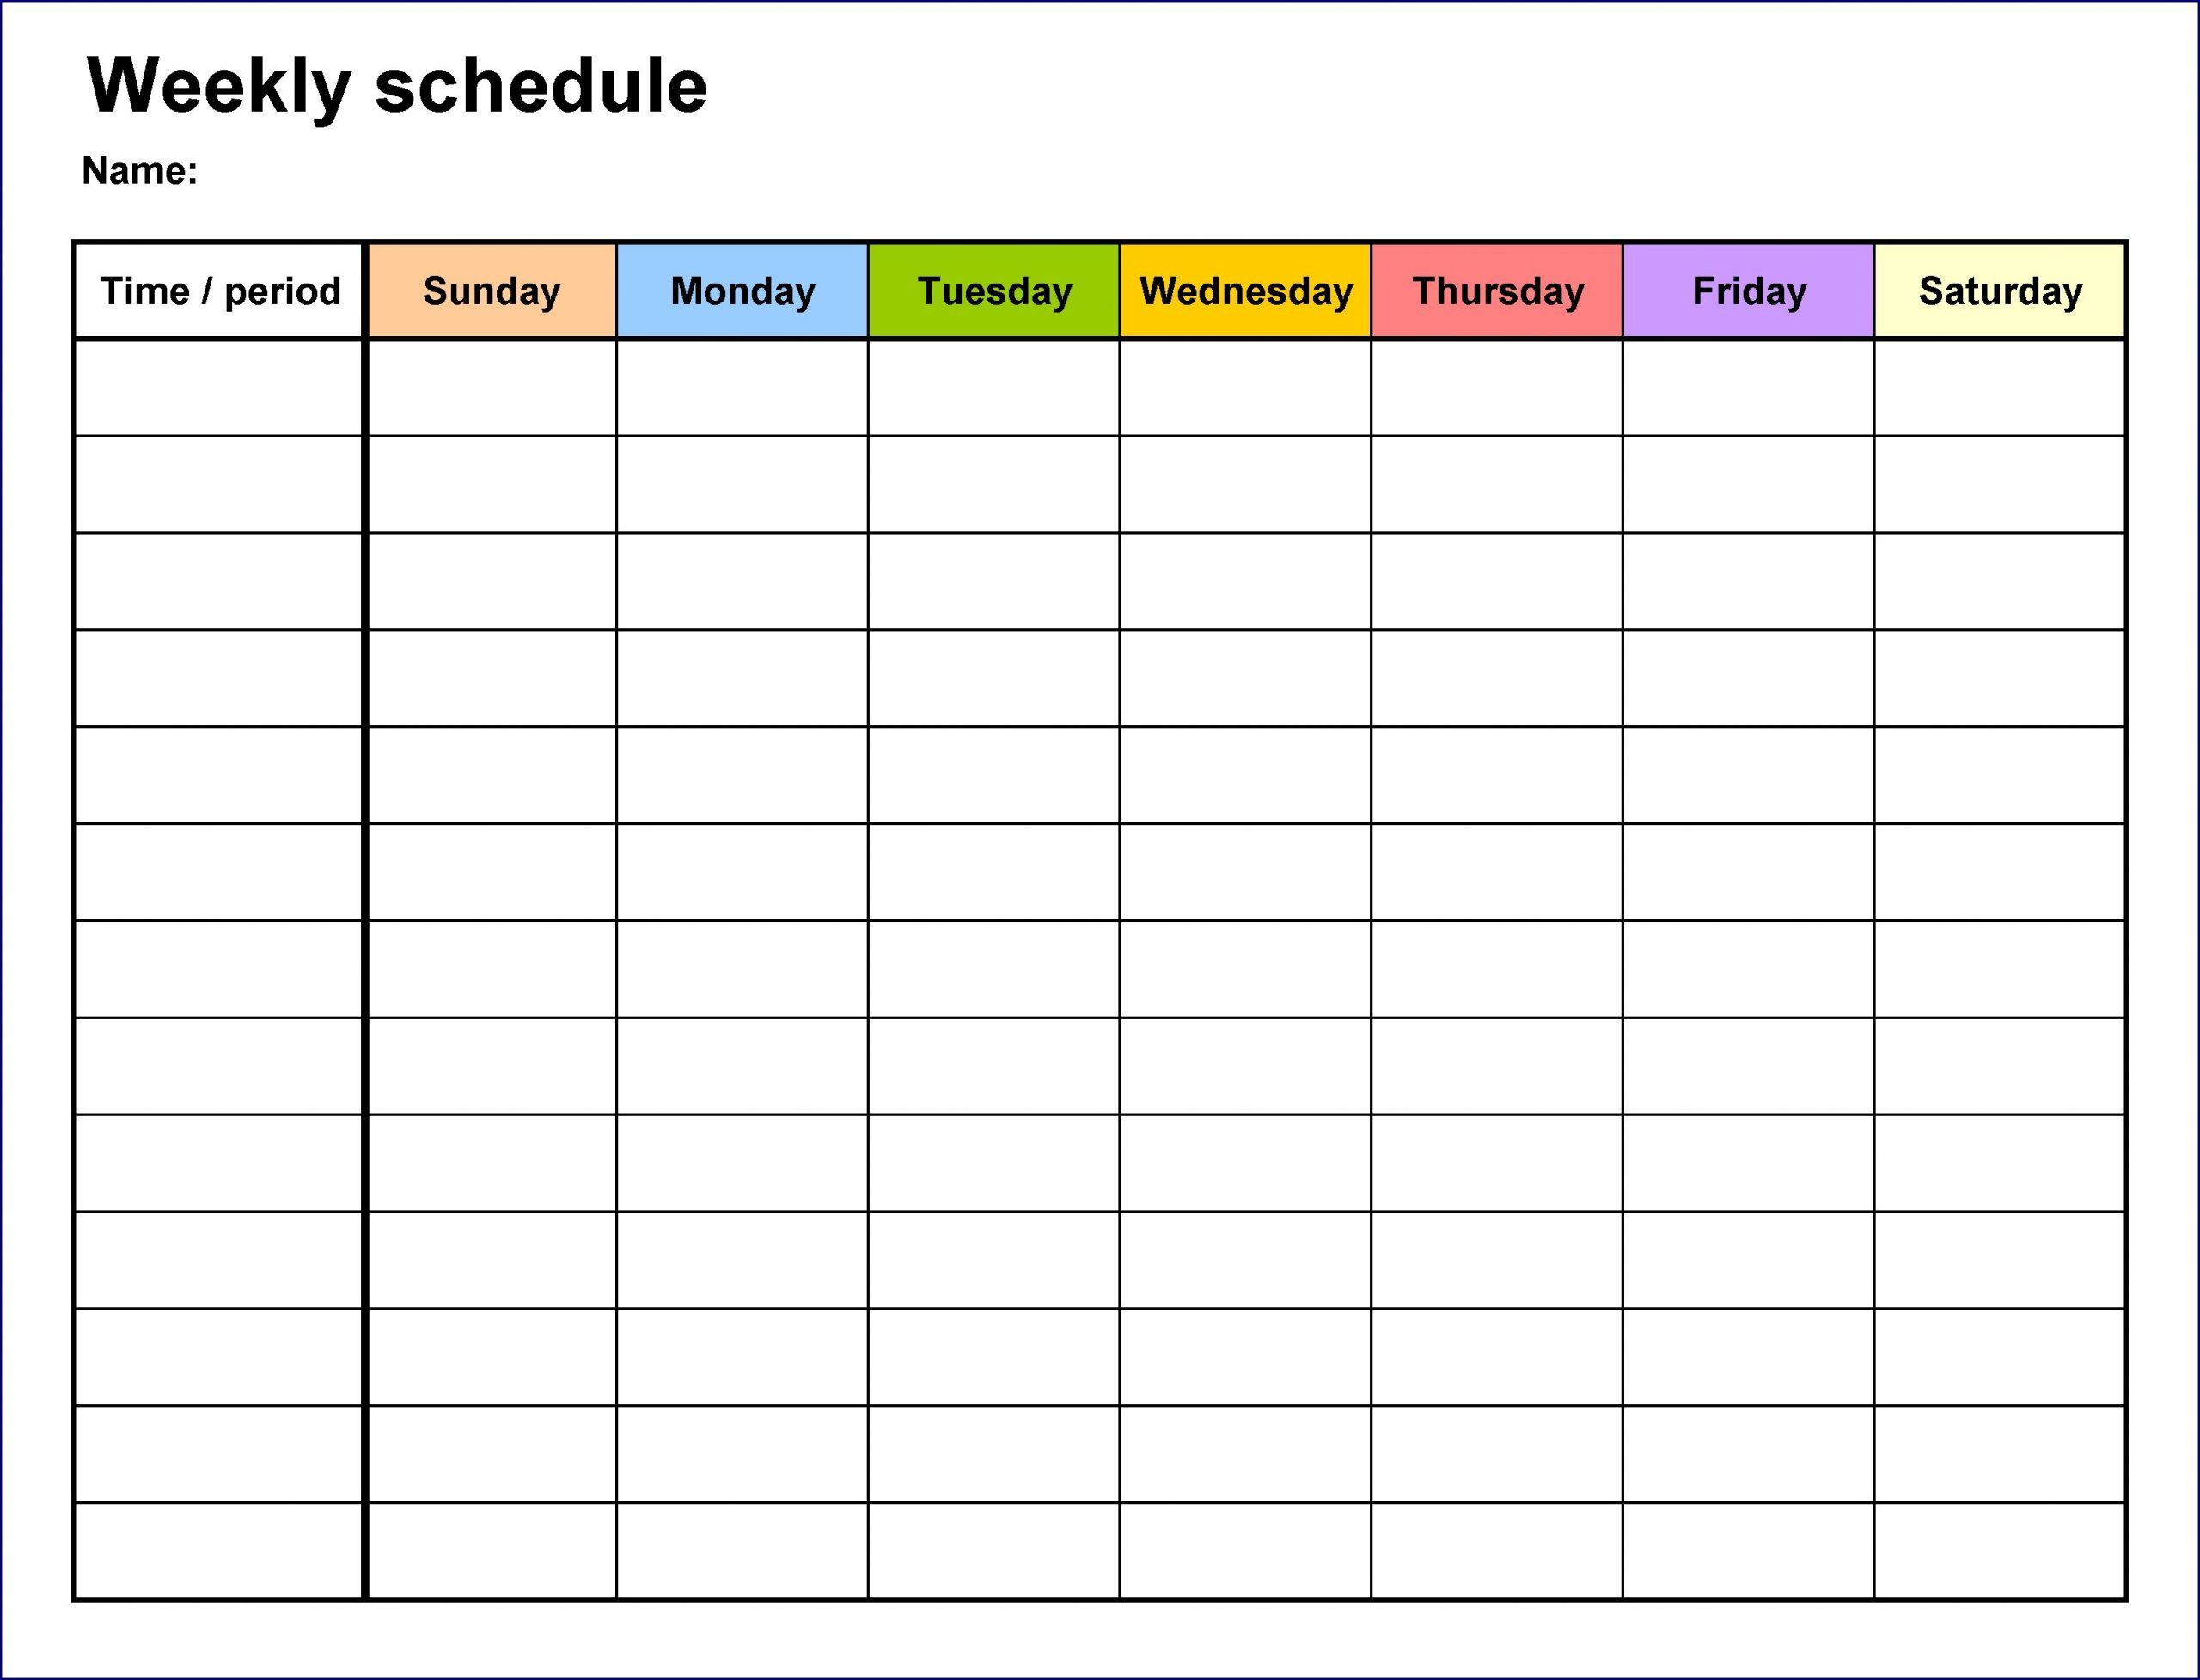 Weekly Schedule With Hours Example